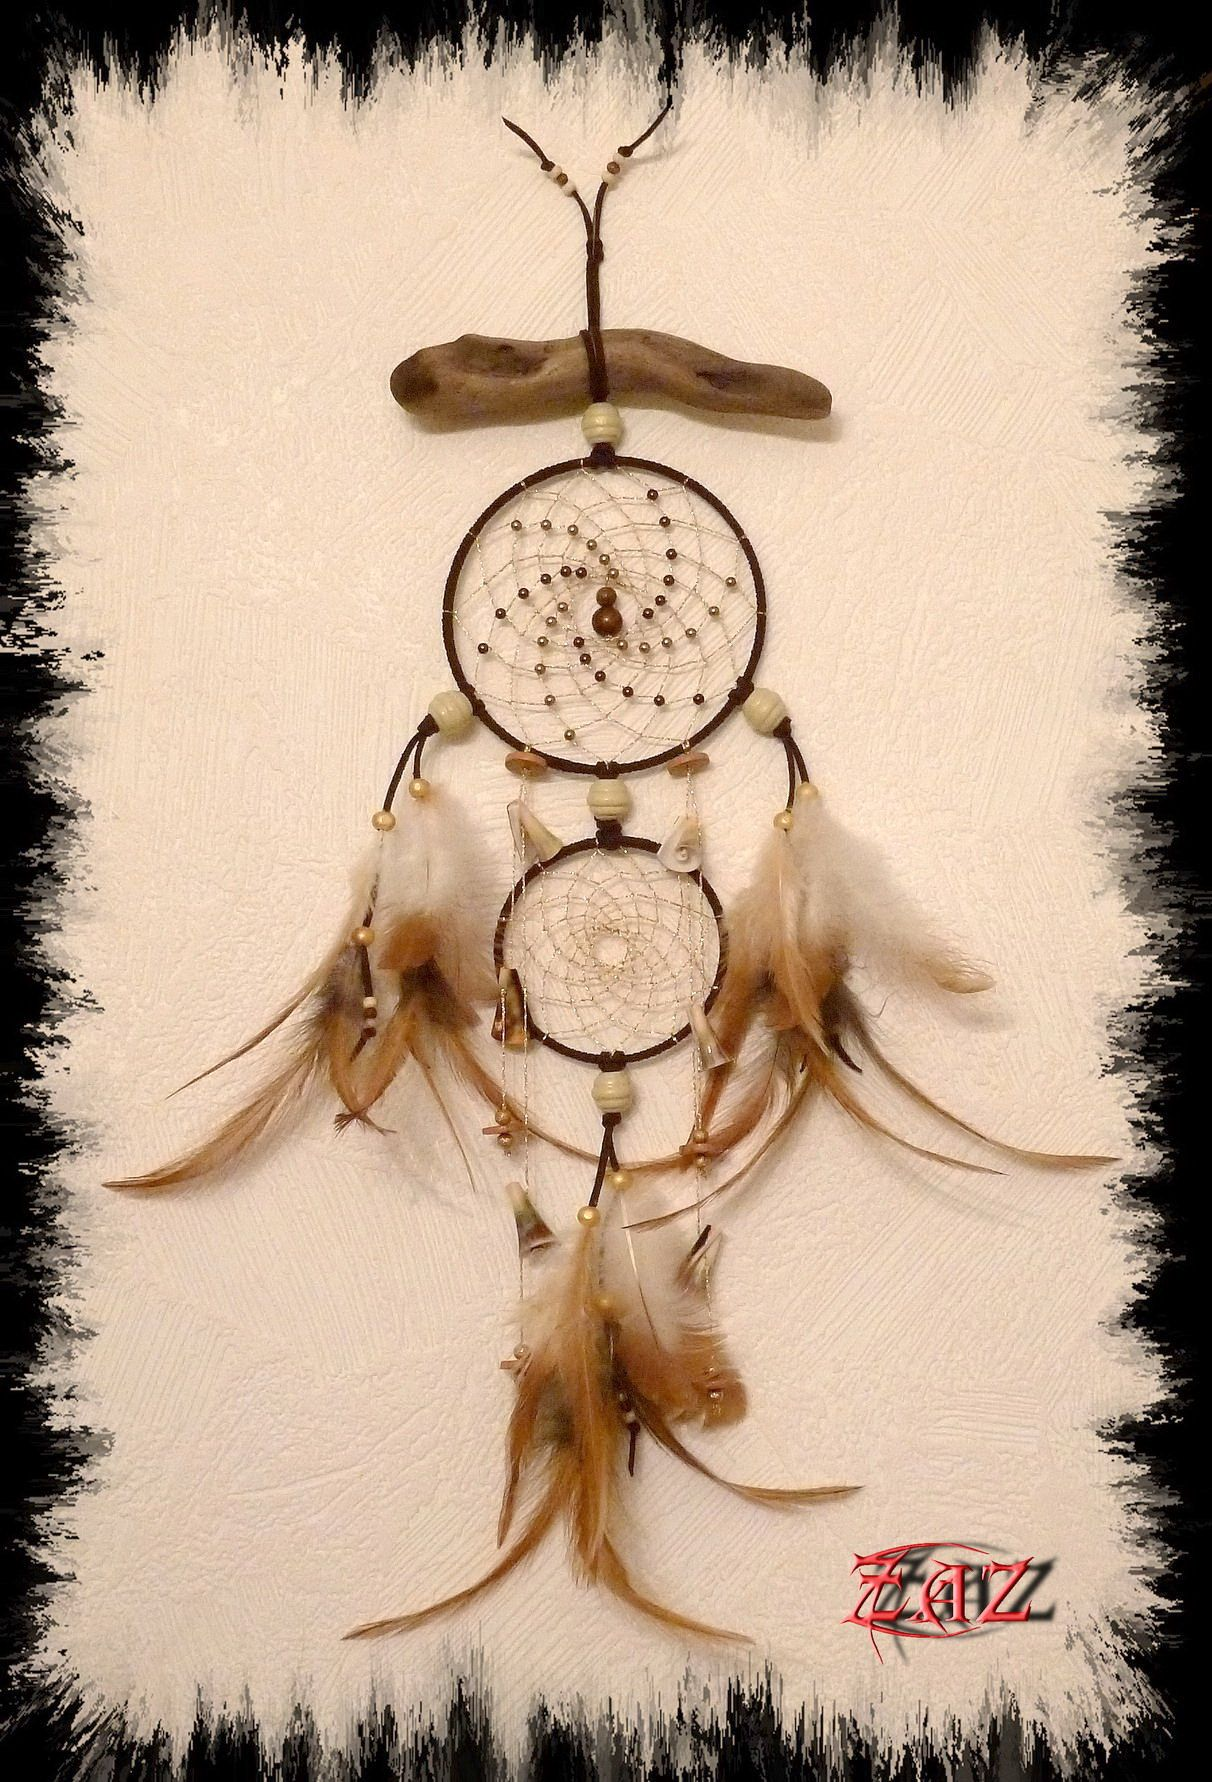 Dreamcatcher with glass, wood and shell beads on a piece of driftwood